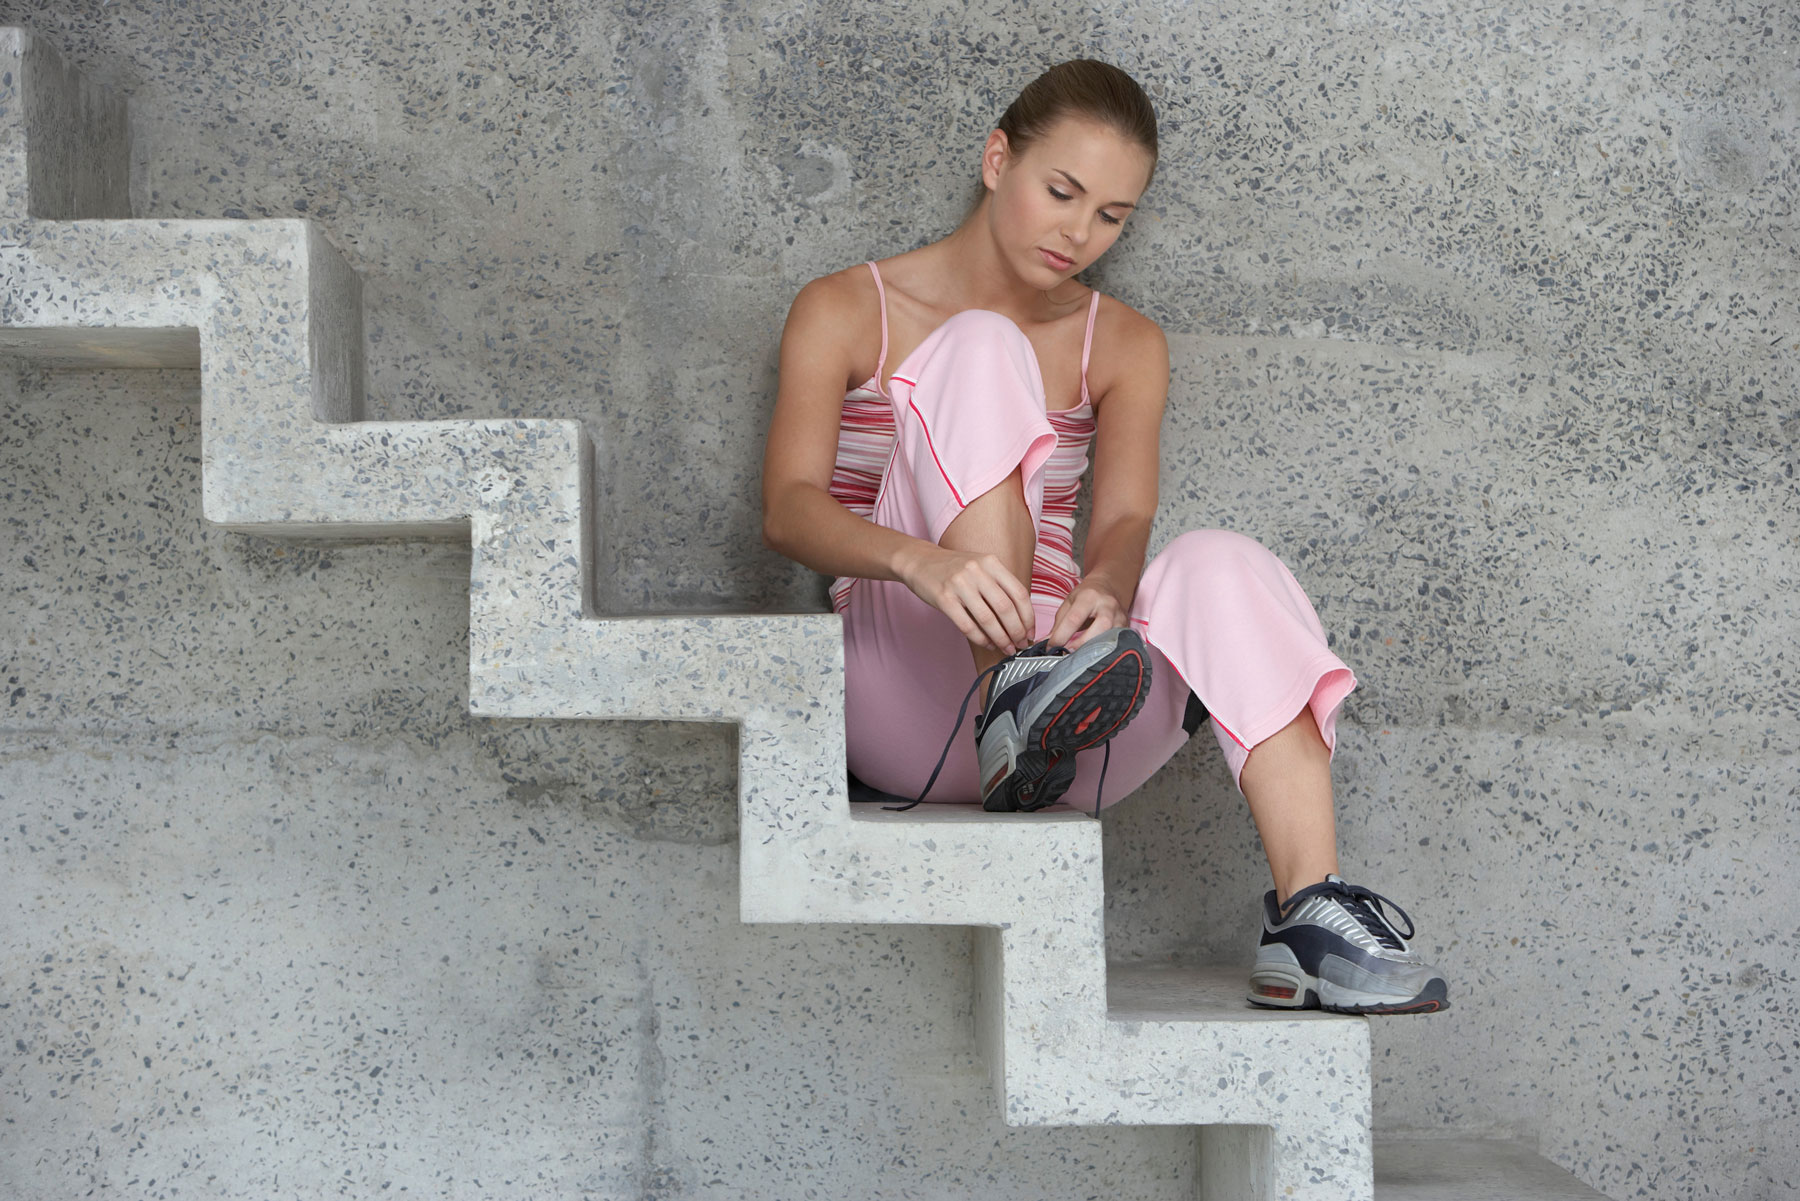 Stairs workout, stair exercises to do at home - woman resting on stairs